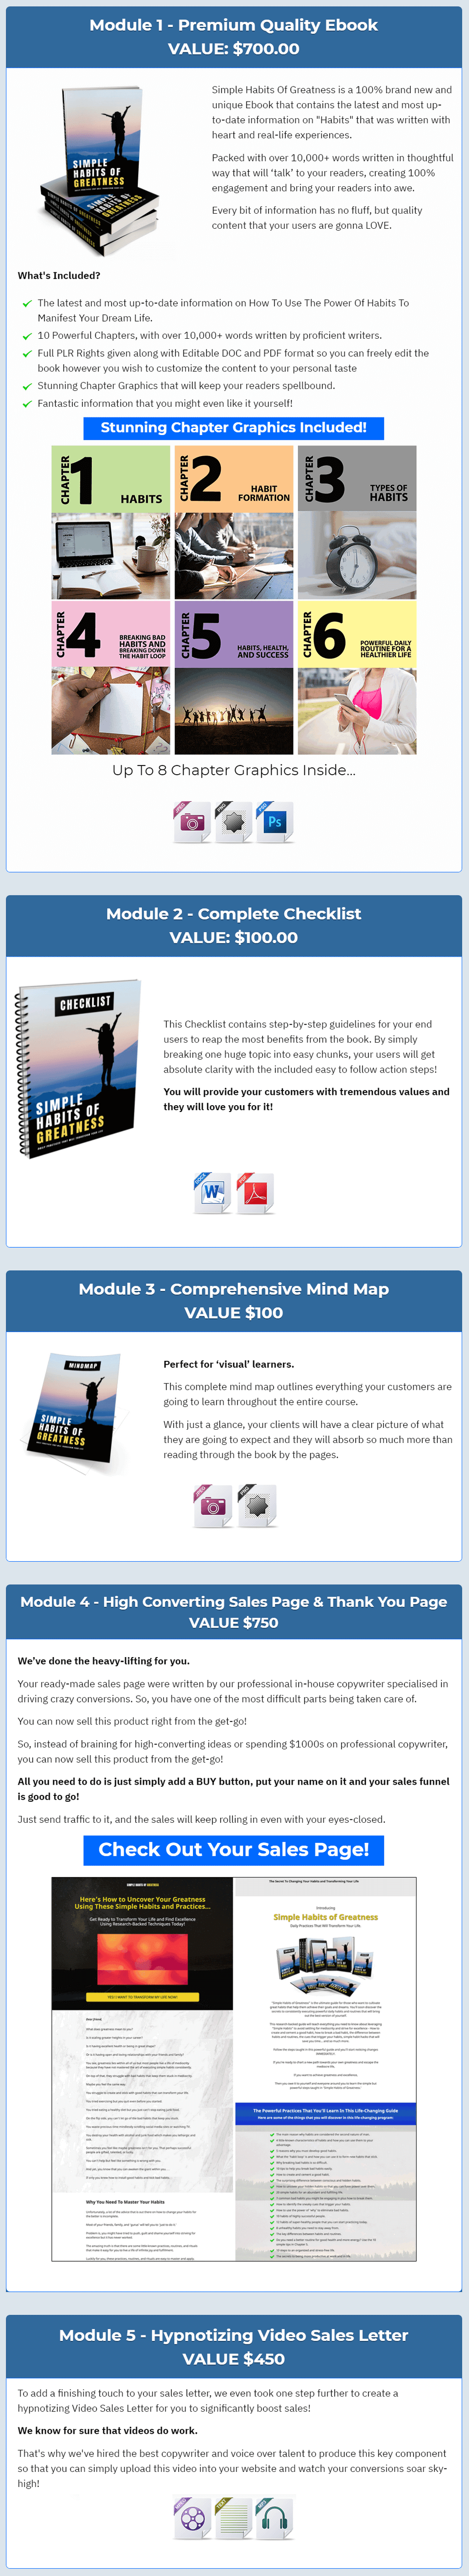 PLR-Simple-Habits-Of-Greatness-feature-1-module